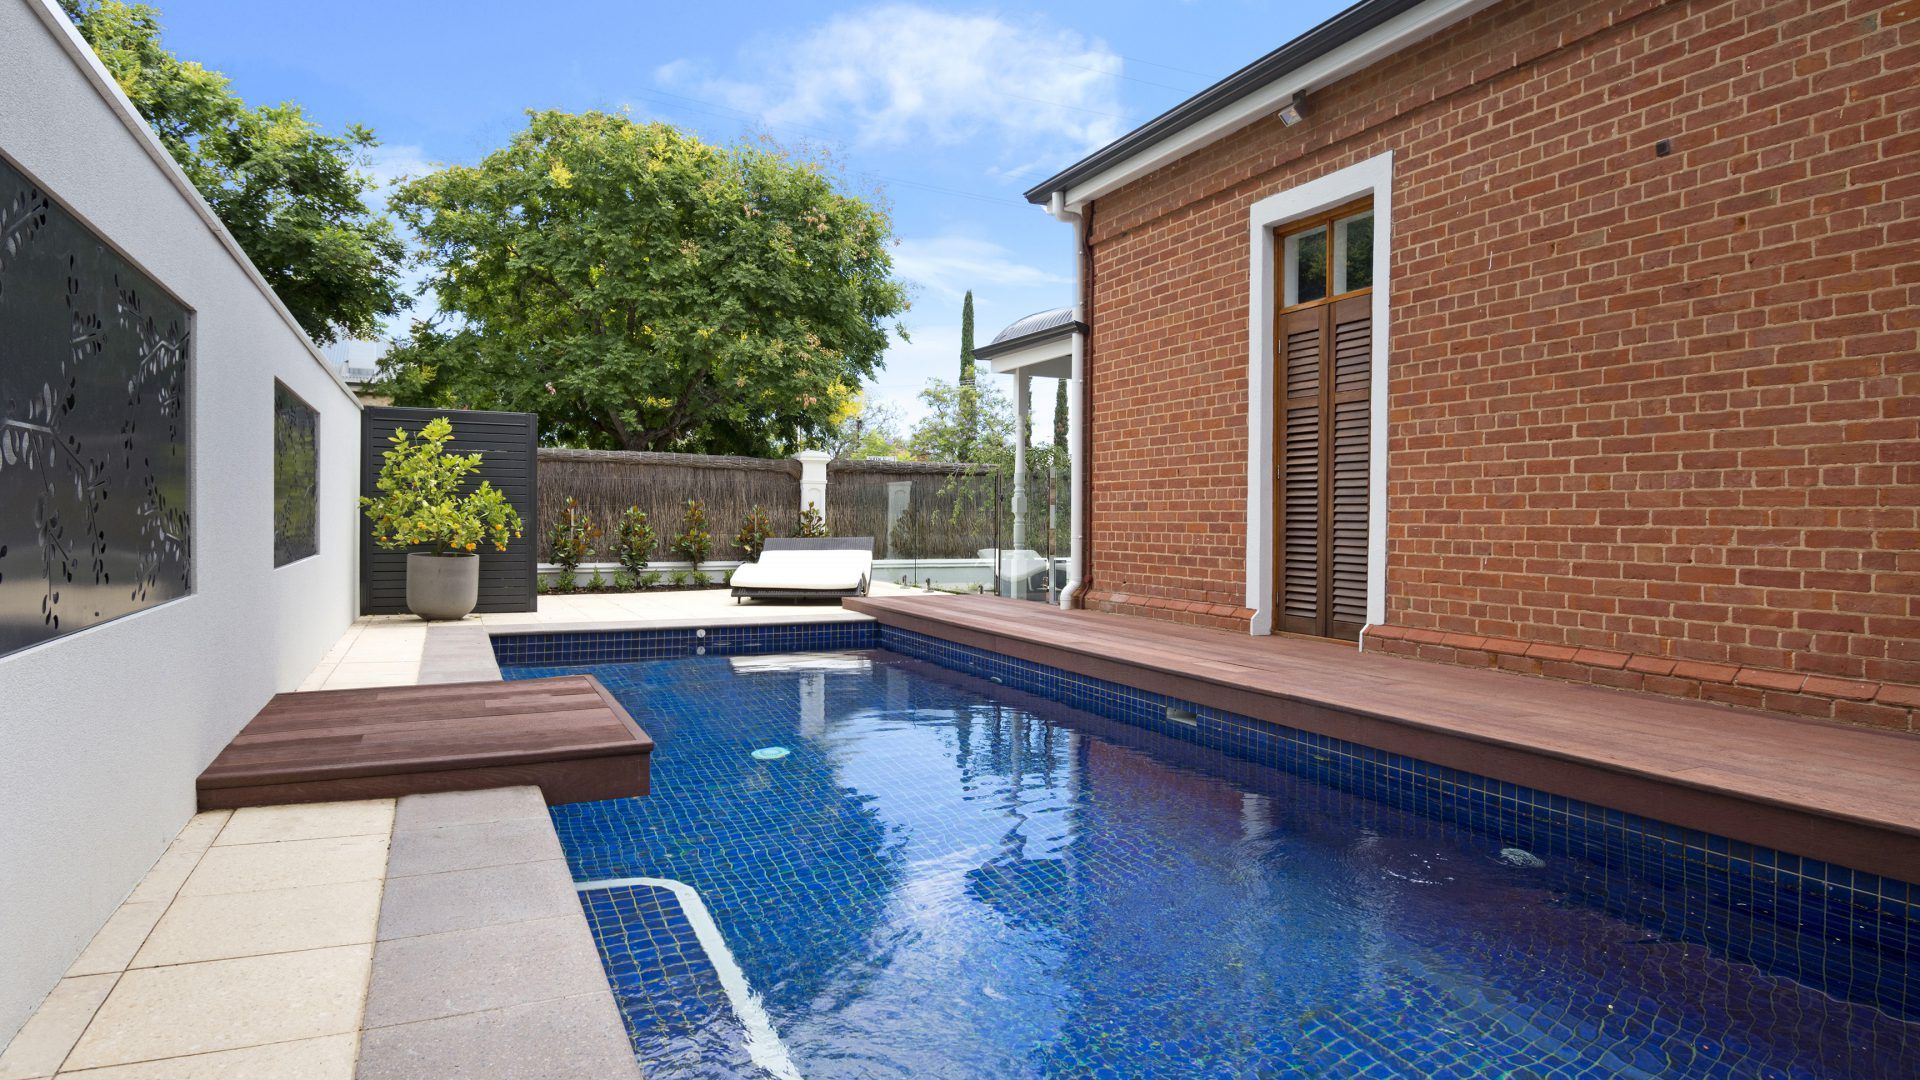 Creative-Outdoors-Millboard-Decking-in-Enhanced-Grain-Jarrah-in-Unley-2-scaled